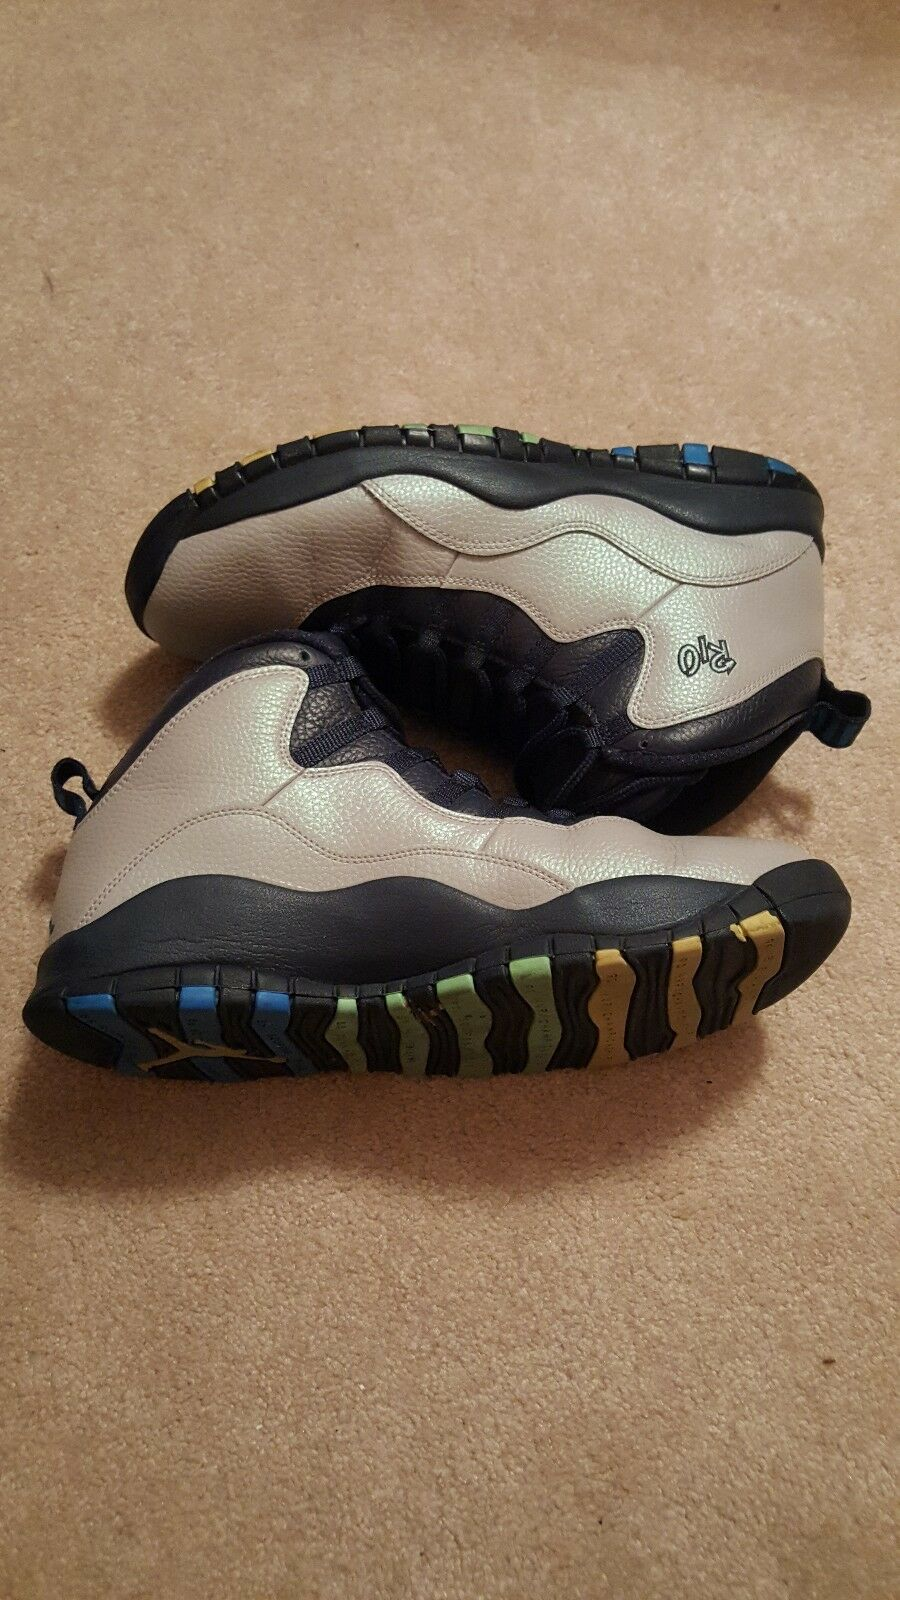 Air Jordan 10 Rio Size 11 - NO Box